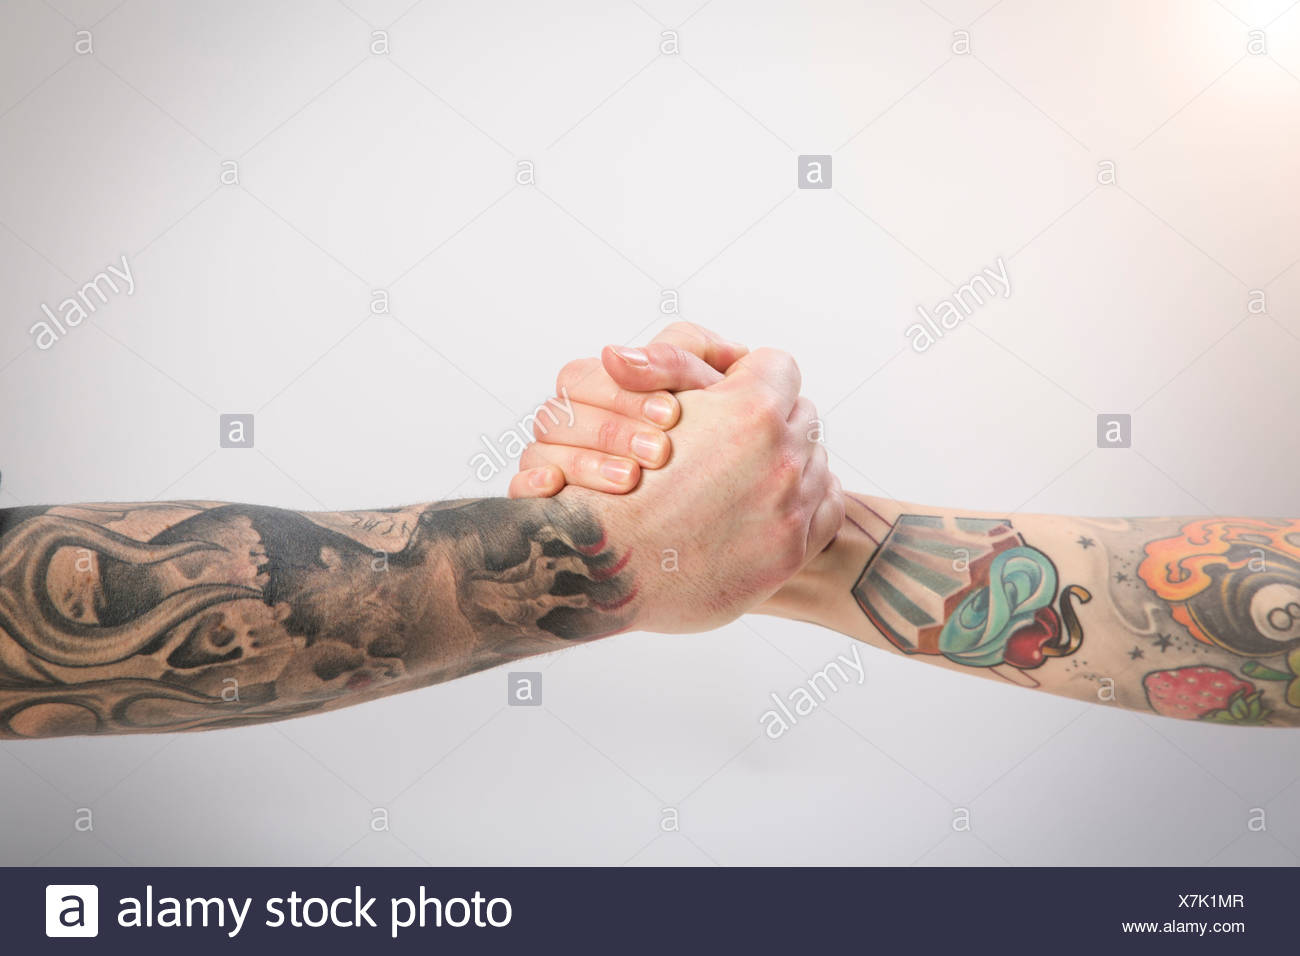 Two tattooed arms · Westend61 GmbH   Alamy Stock Photo 1584f4bacb84